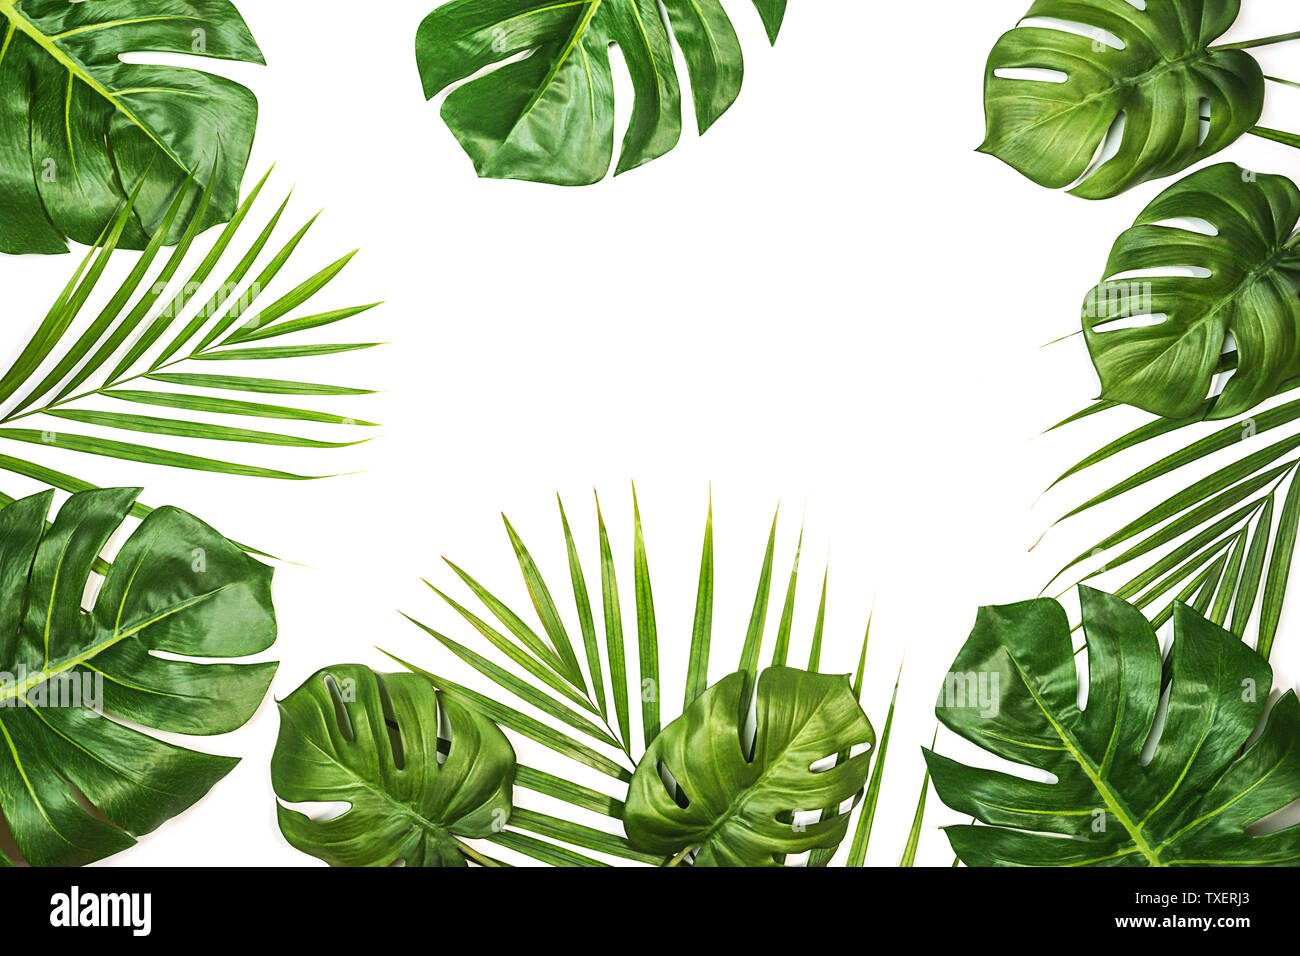 Tropical Leaves Monstera And Palm Isolated Swiss Cheese Plant Isolated On White Background Stock Photo Alamy Choose from over a million free vectors, clipart graphics, vector art images, design templates, and illustrations created by artists worldwide! https www alamy com tropical leaves monstera and palm isolated swiss cheese plant isolated on white background image257252075 html